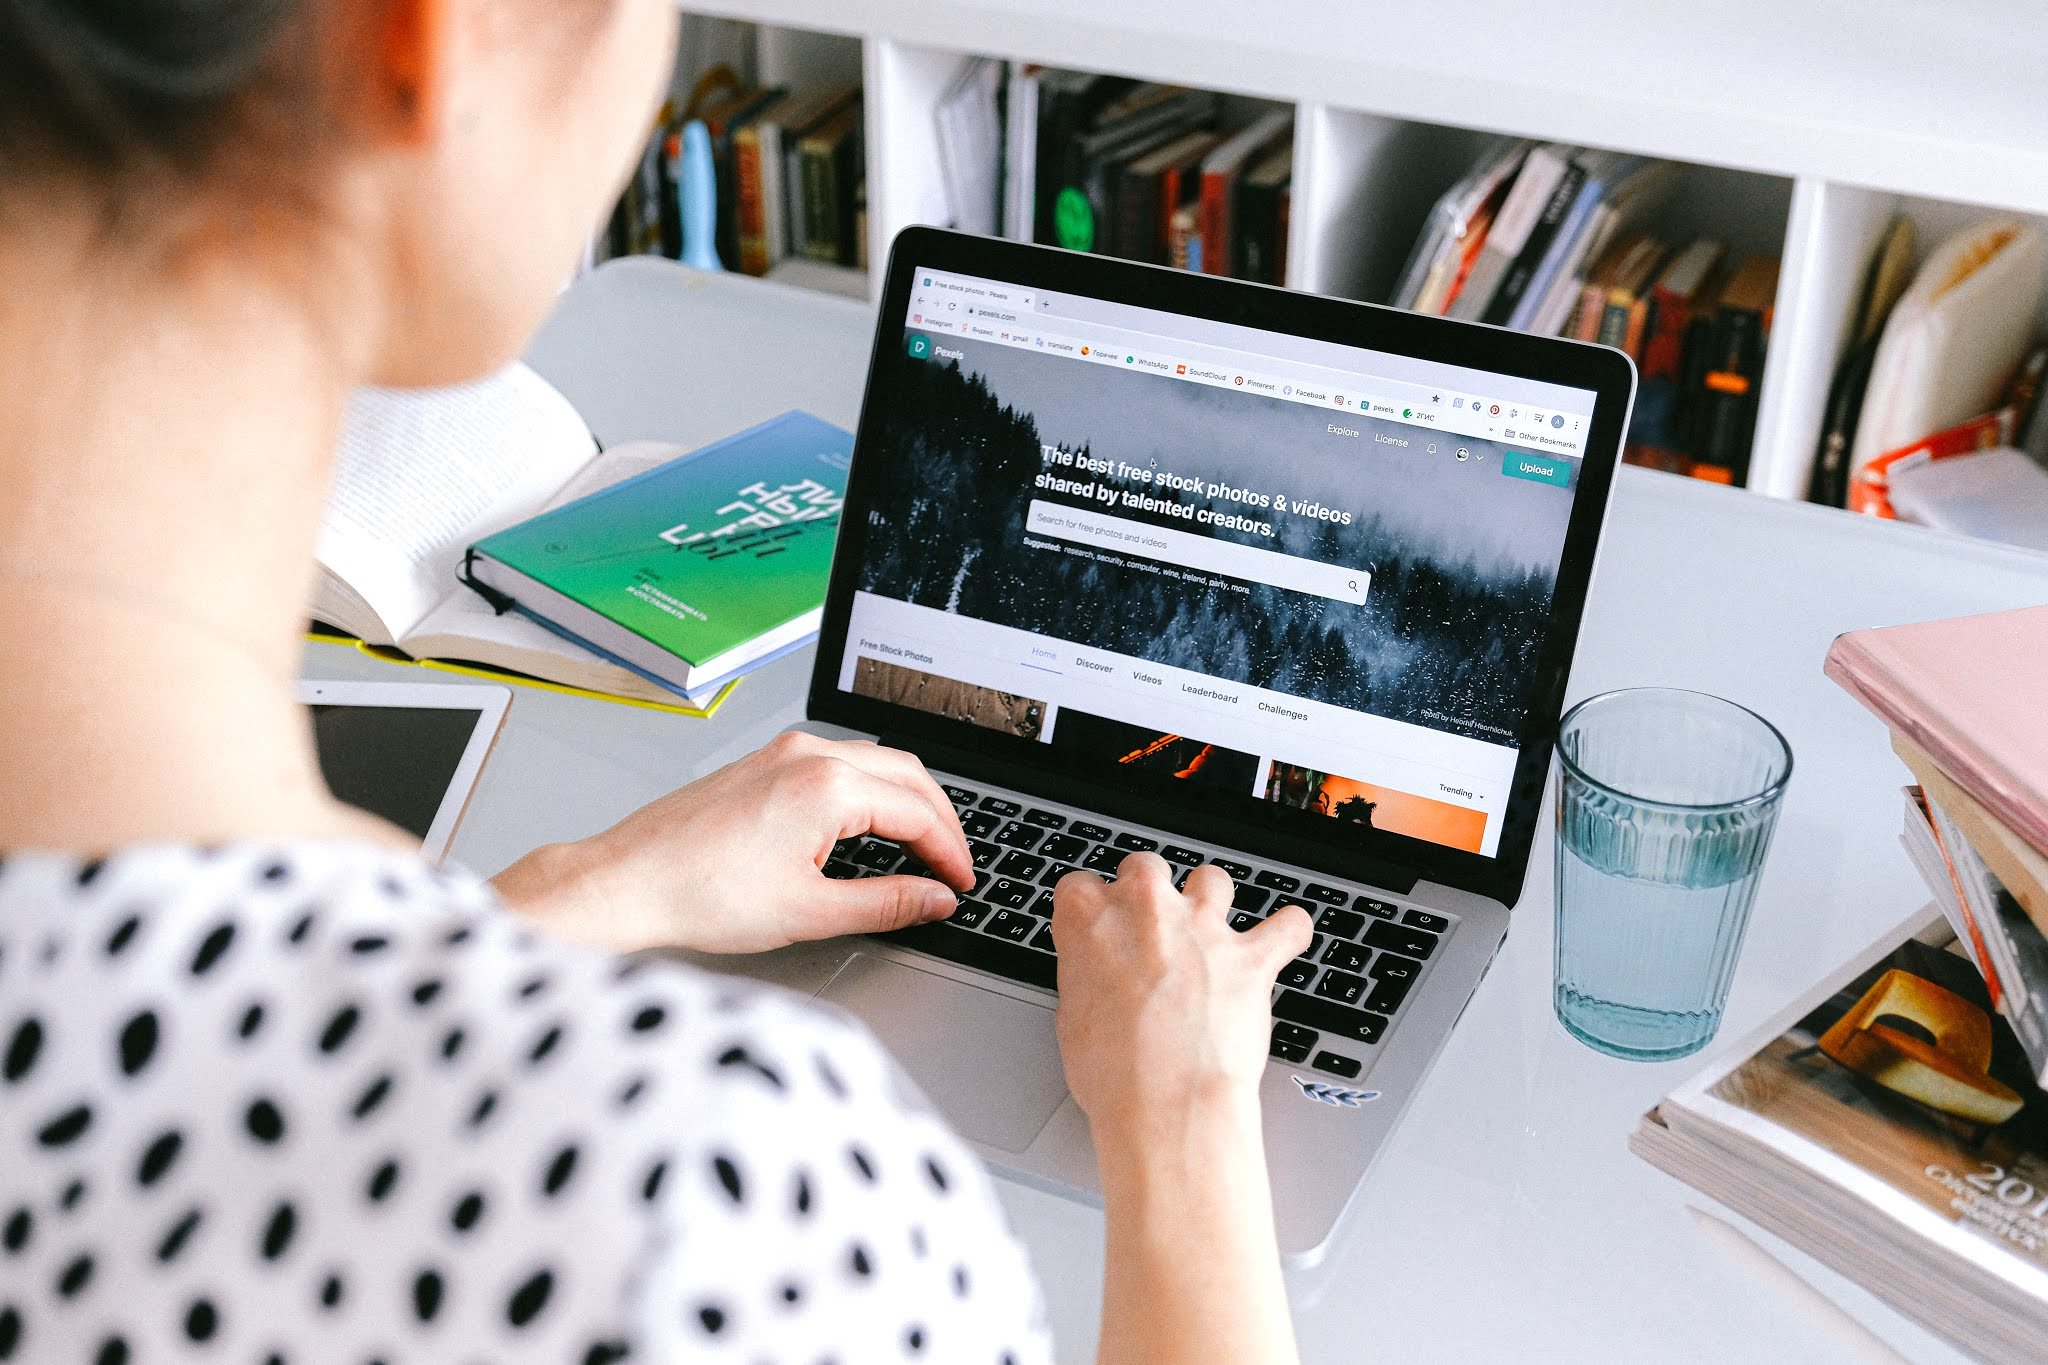 5 Helpful Tips for Managing Your Online Learning Effectively